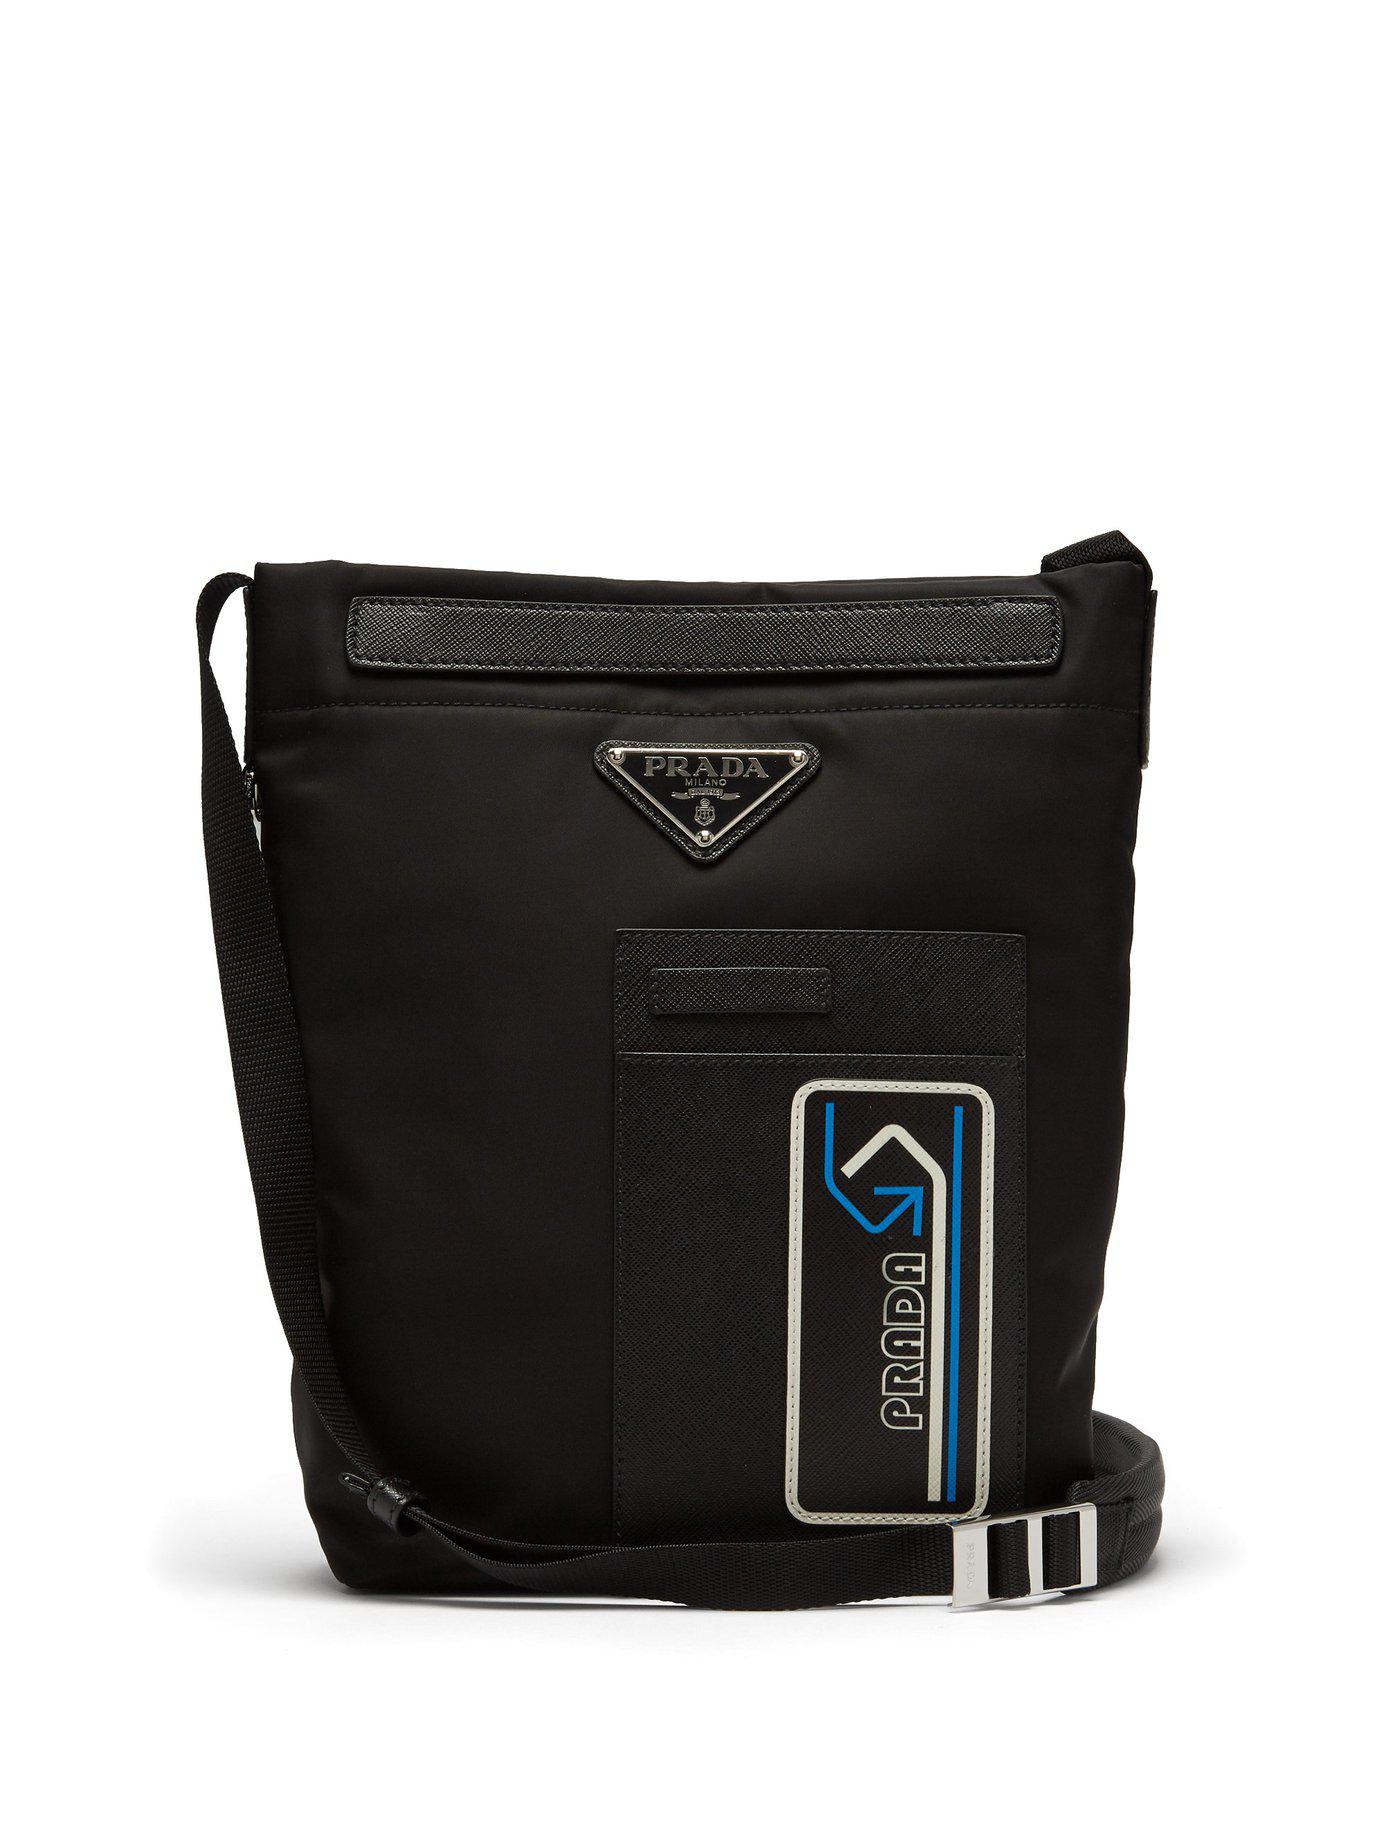 84a92287f551 Prada - Black Logo-patch Nylon Cross-body Bag for Men - Lyst. View  fullscreen